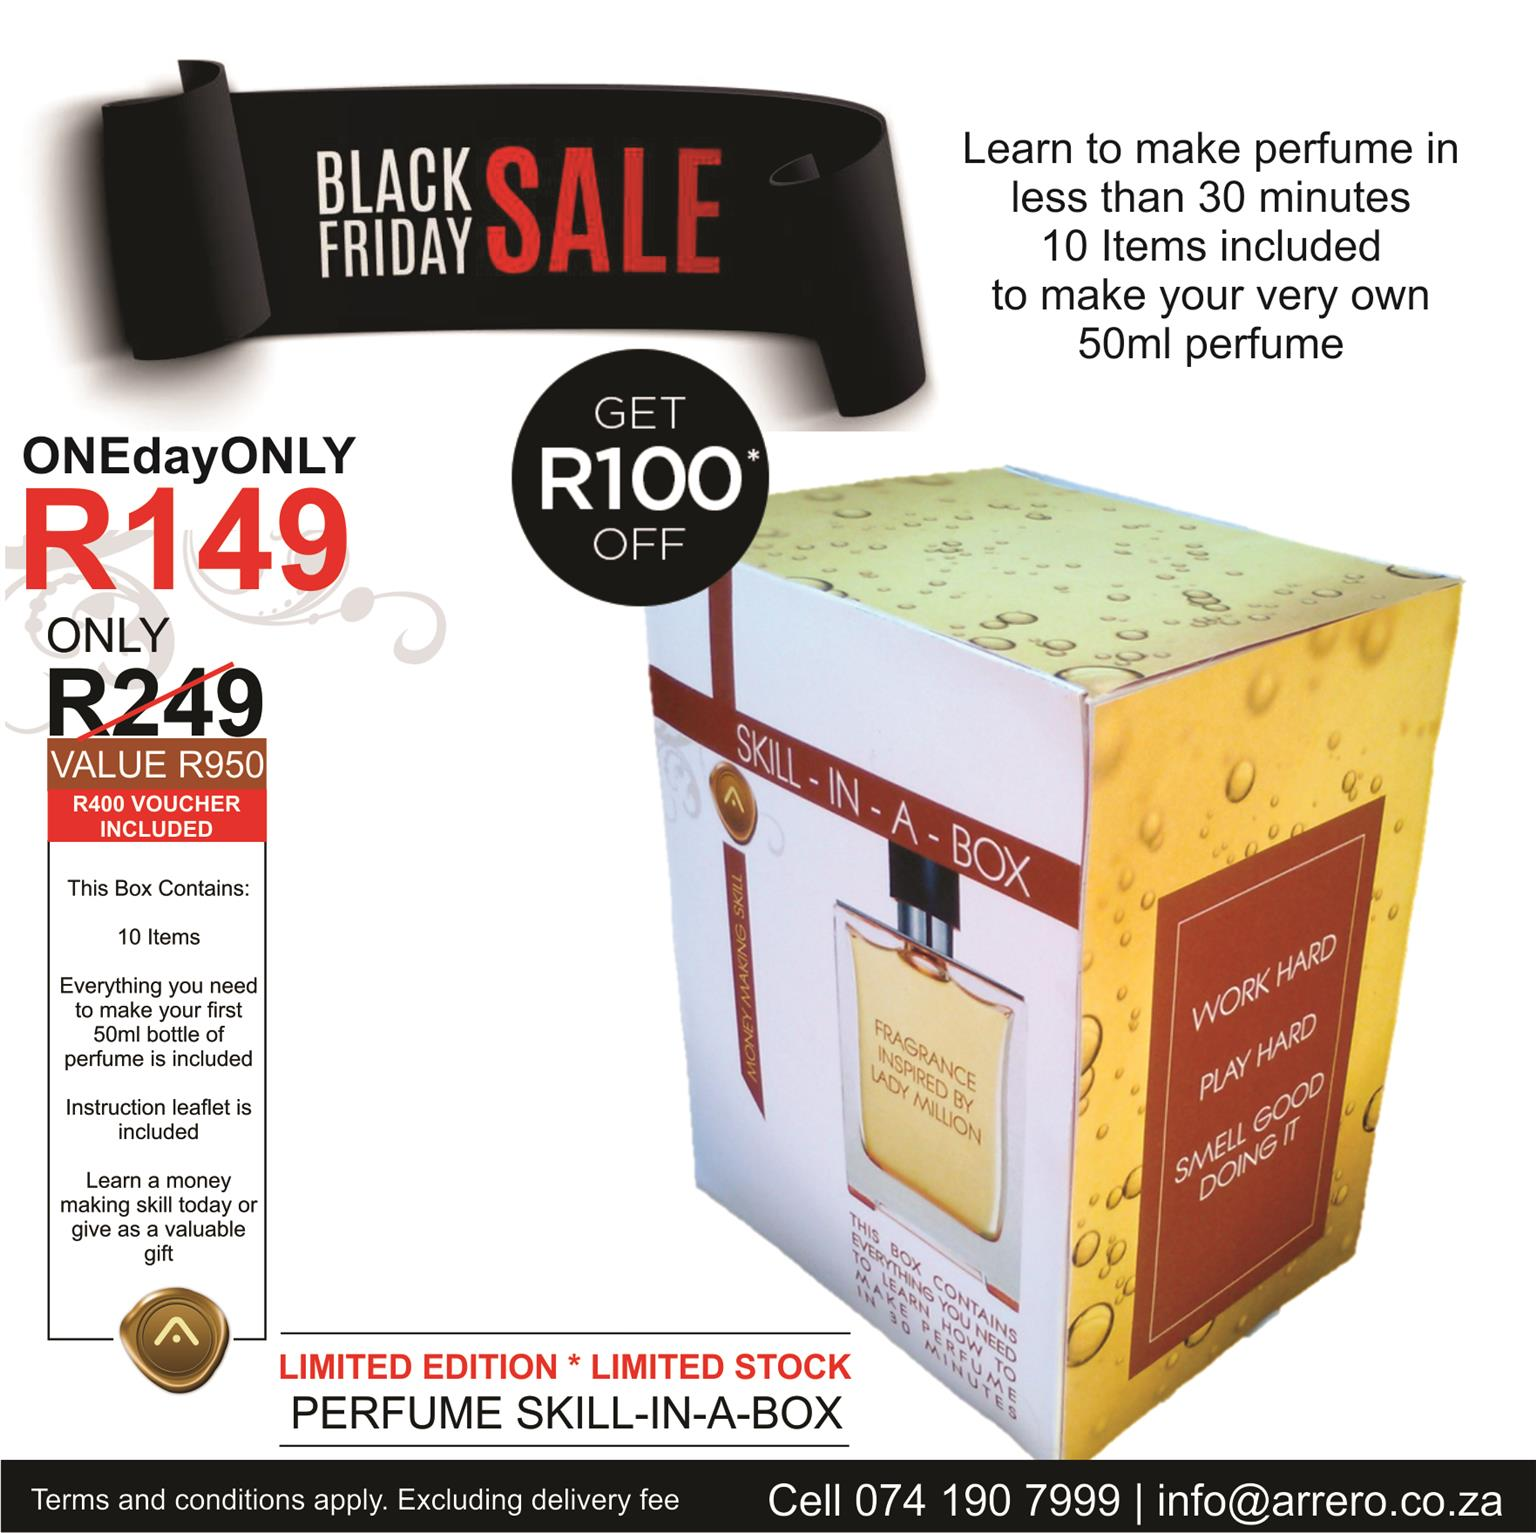 TODAY ONLY ! Black Friday Perfume Skill in a box only R149